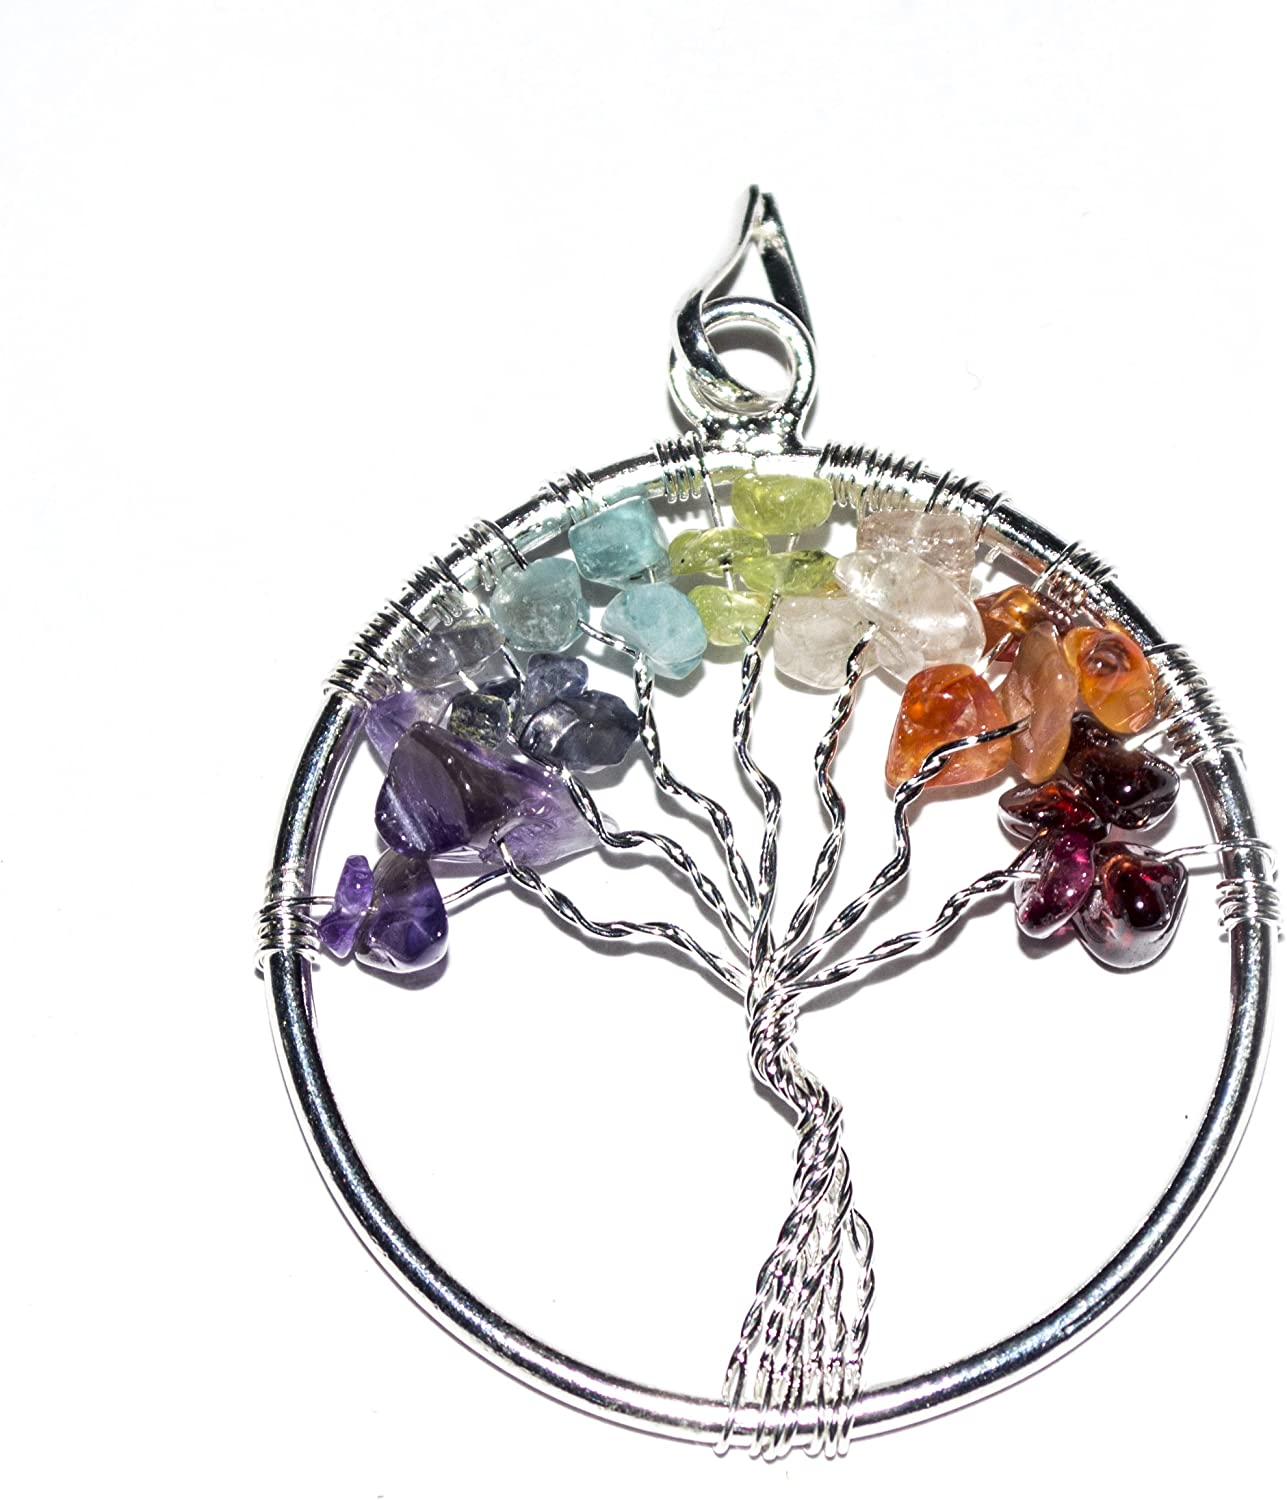 GEM STONES TREE OF LIFE HEALING SPIRITUAL NECKLACE 22 INCH SILVER CHAIN GIFT BOX